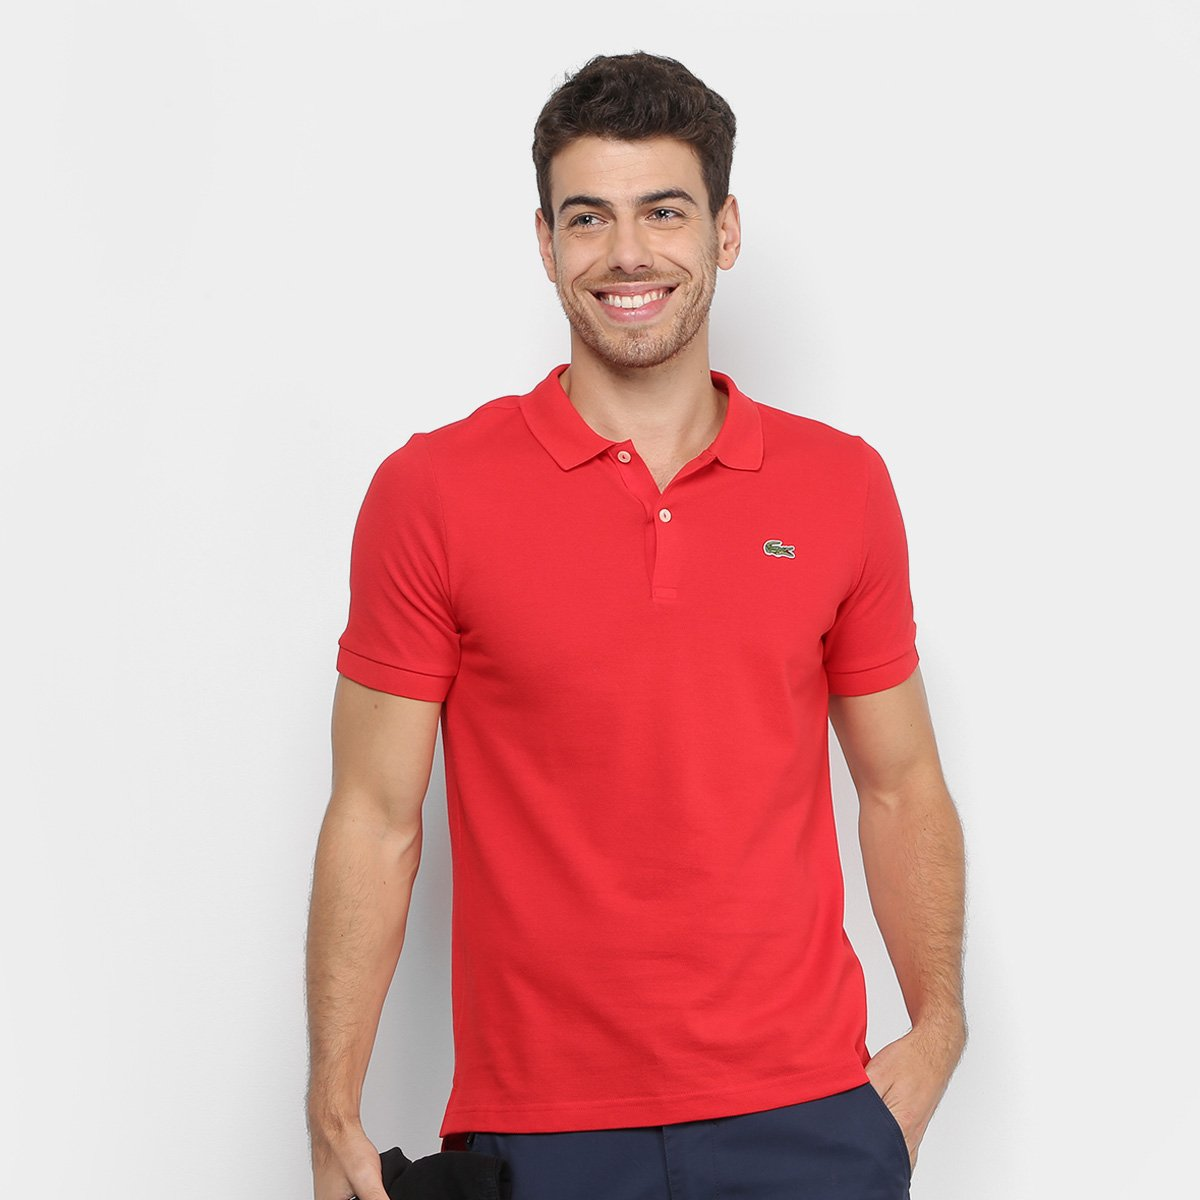 51d26726e0 Camisa Polo Lacoste Live Piquet Masculina. undefined